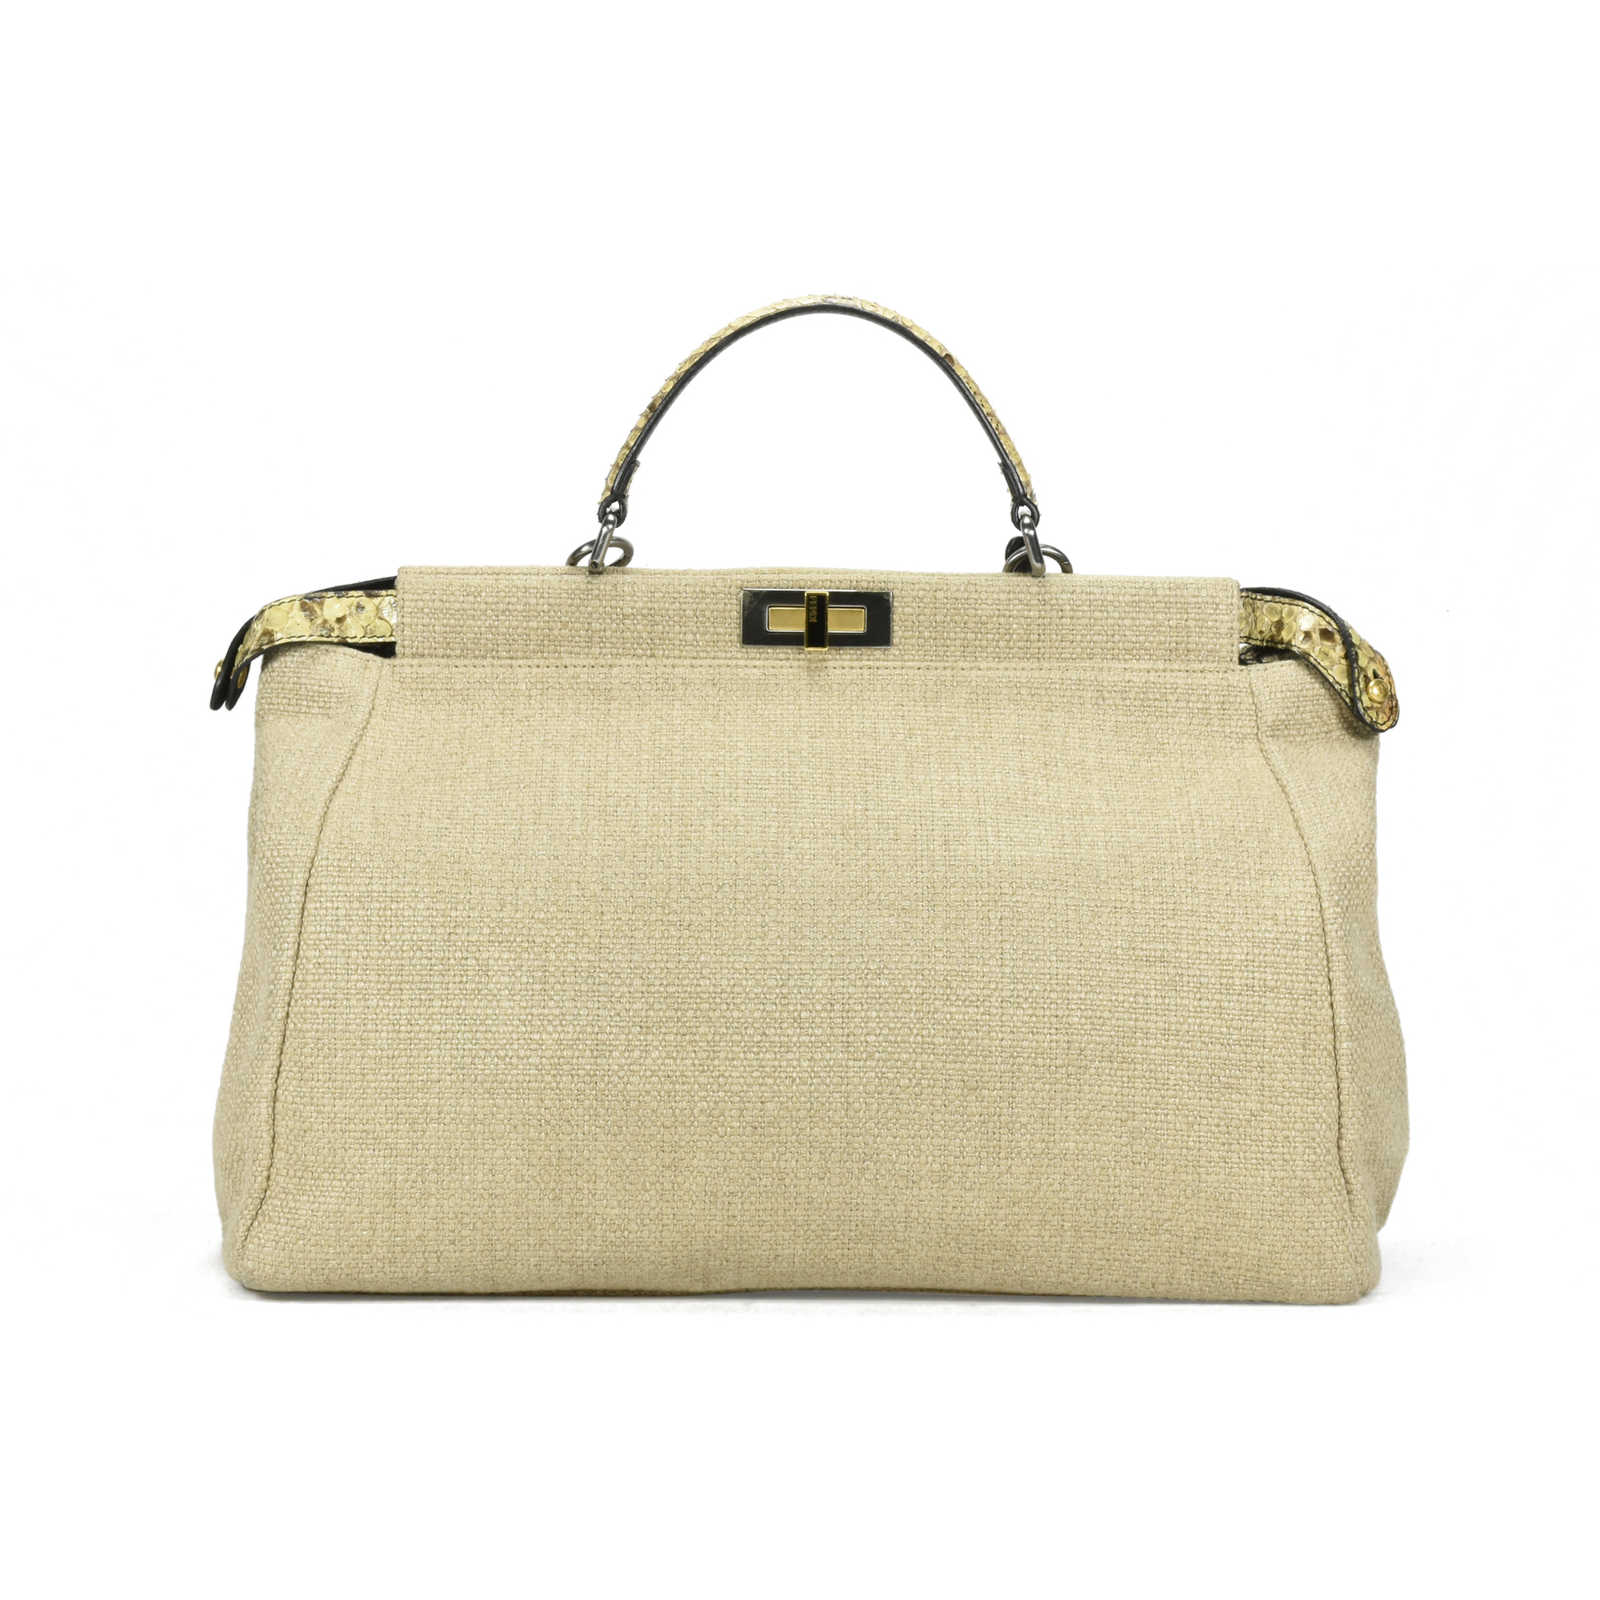 fff7556ce48 ... Authentic Second Hand Fendi Large Canvas Snakeskin Peekaboo Bag  (PSS-200-00888) ...